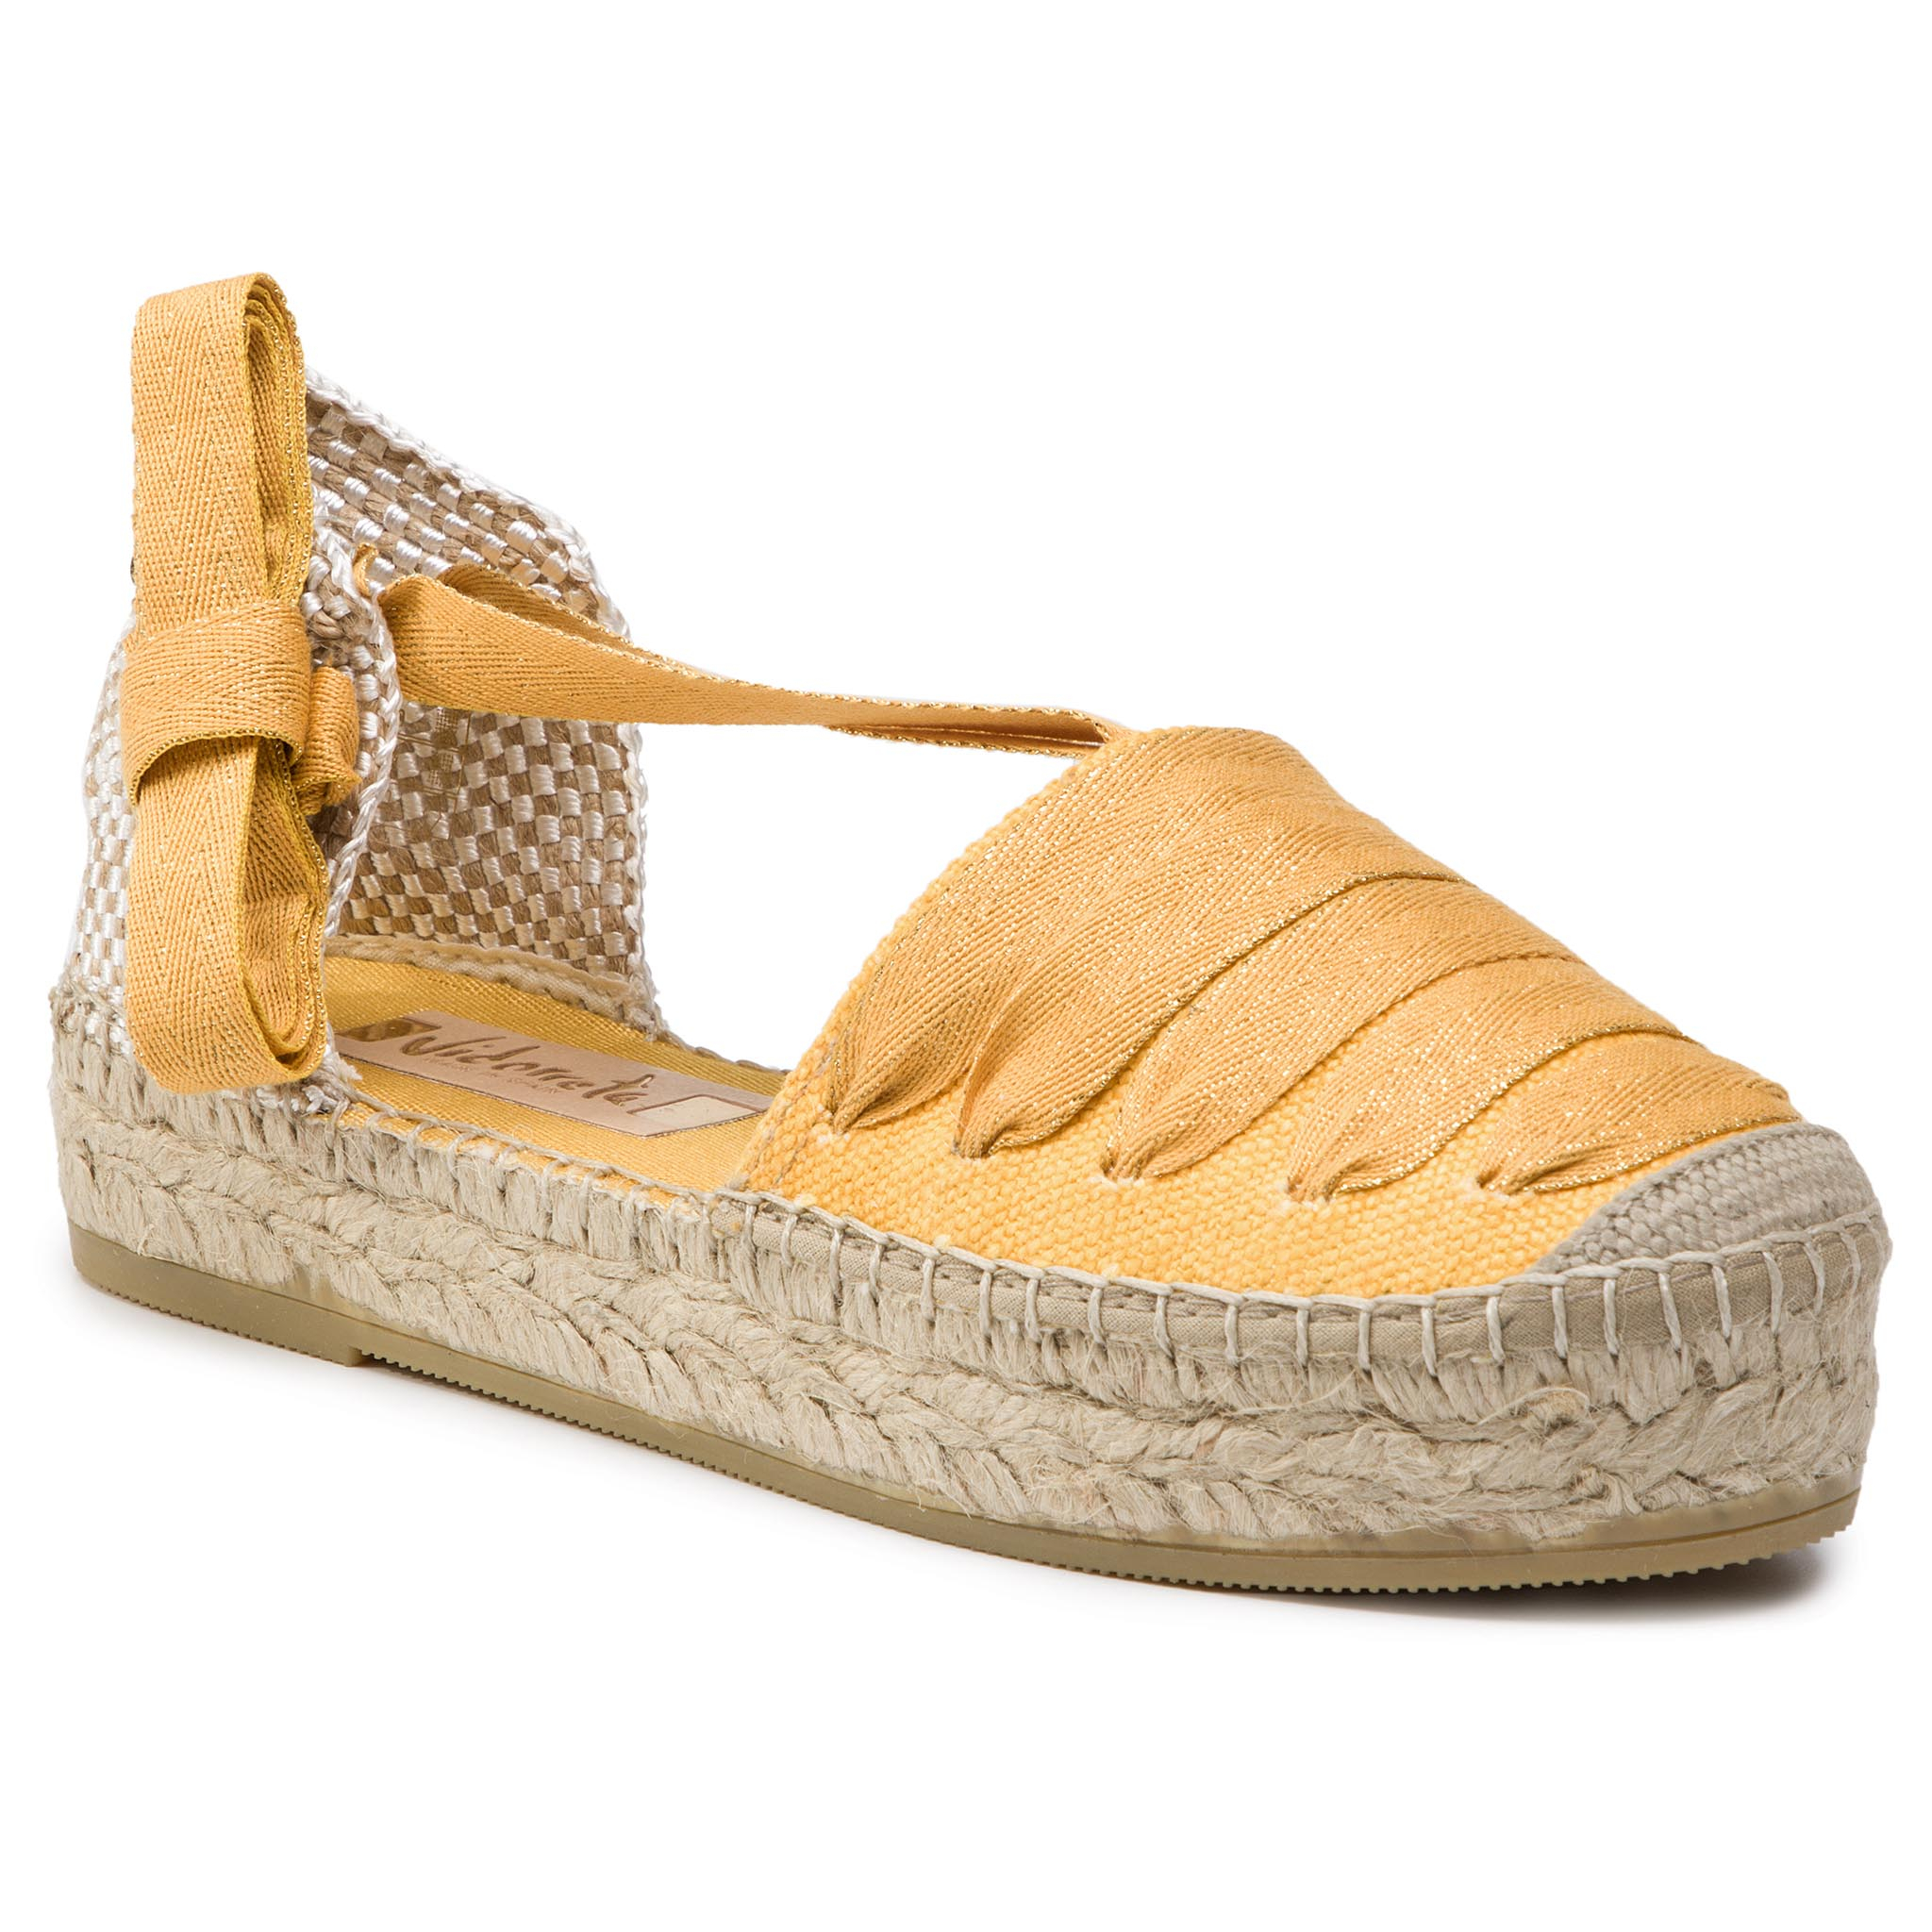 e43e97608e0 Espadrilles TOMMY HILFIGER - Printed Closed Toe Wedge Sandal ...